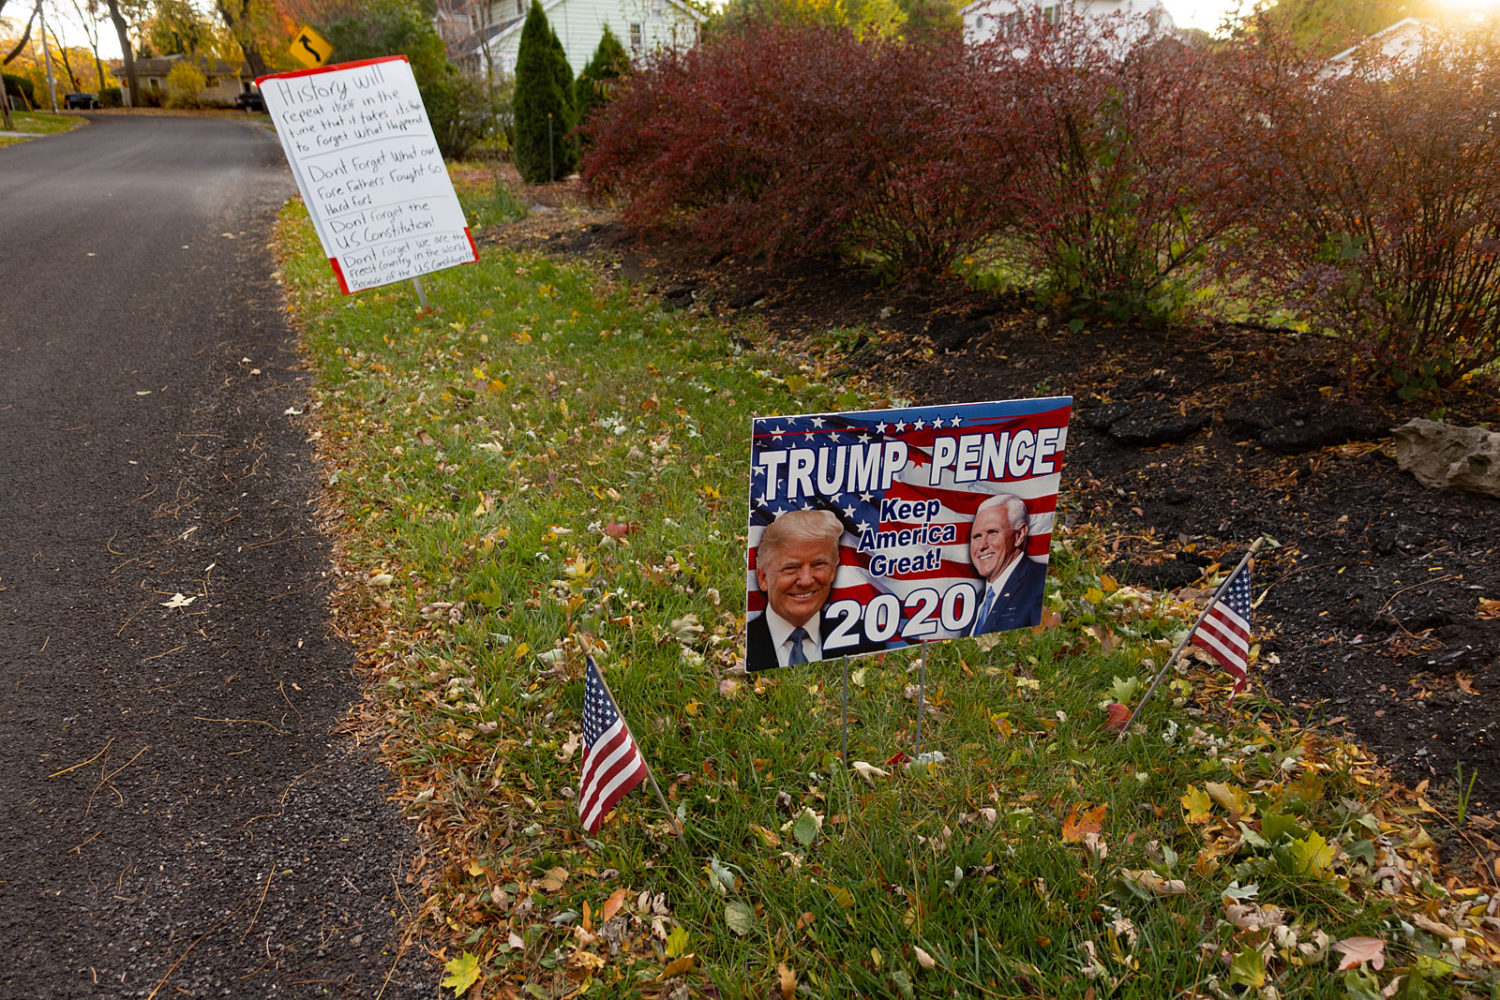 Trump sign on Peart Avenue with constitution message